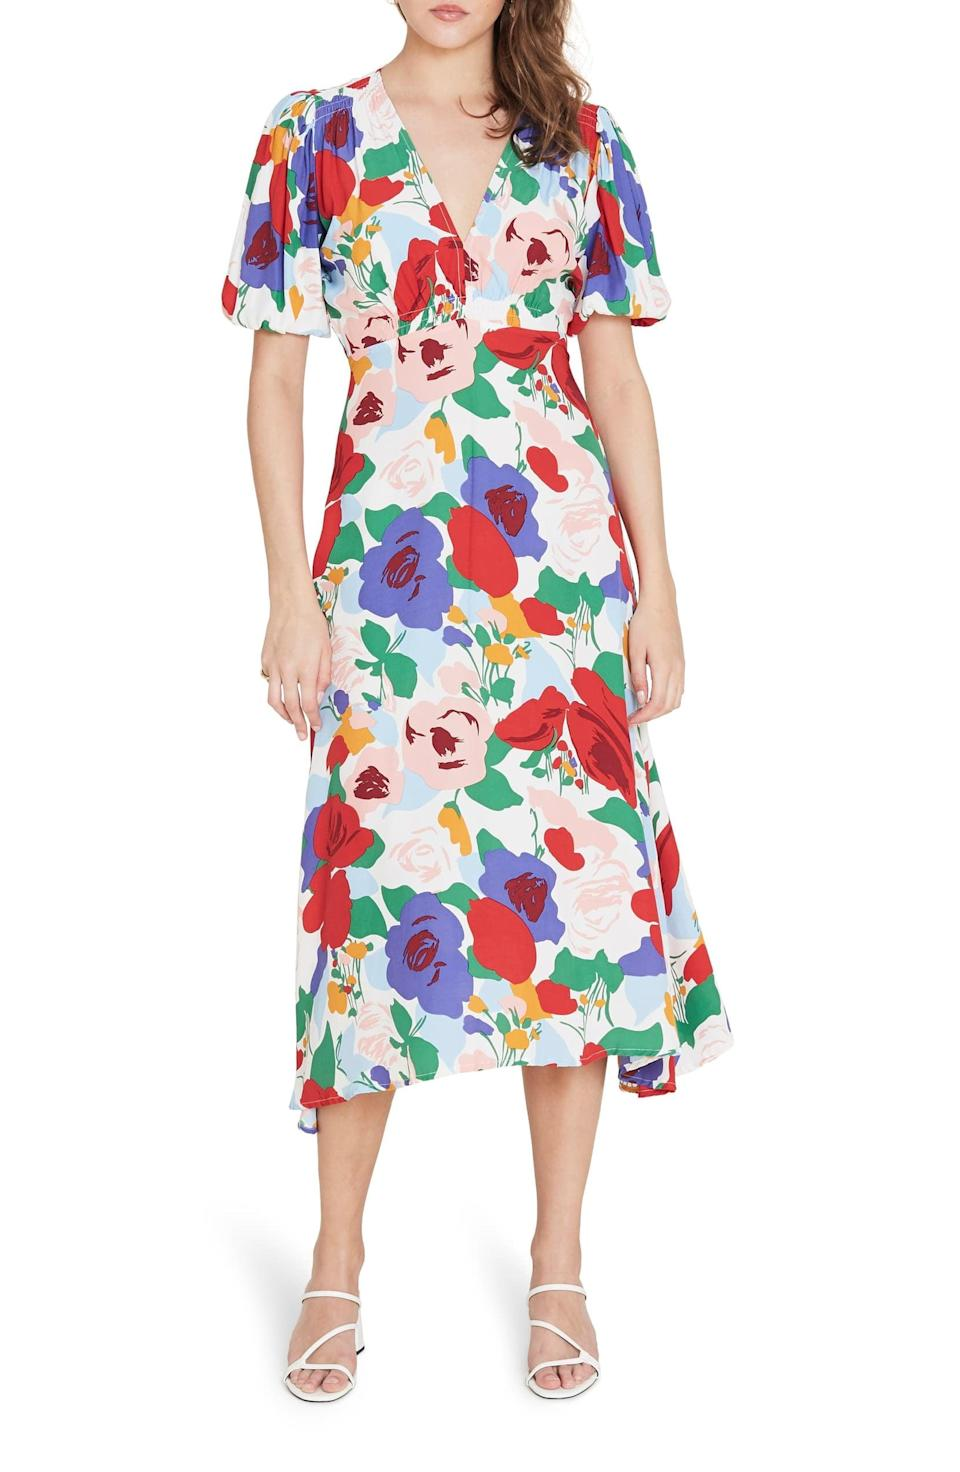 "<p>The print on this <a href=""https://www.popsugar.com/buy/Faithfull-Brand-Vittoria-Floral-Midi-Dress-546038?p_name=Faithfull%20the%20Brand%20Vittoria%20Floral%20Midi%20Dress&retailer=shop.nordstrom.com&pid=546038&price=189&evar1=fab%3Aus&evar9=47237816&evar98=https%3A%2F%2Fwww.popsugar.com%2Fphoto-gallery%2F47237816%2Fimage%2F47237874%2FFaithfull-Brand-Vittoria-Floral-Midi-Dress&list1=shopping%2Cdresses%2Cspring%20fashion&prop13=api&pdata=1"" class=""link rapid-noclick-resp"" rel=""nofollow noopener"" target=""_blank"" data-ylk=""slk:Faithfull the Brand Vittoria Floral Midi Dress"">Faithfull the Brand Vittoria Floral Midi Dress </a> ($189) is so cheerful.</p>"